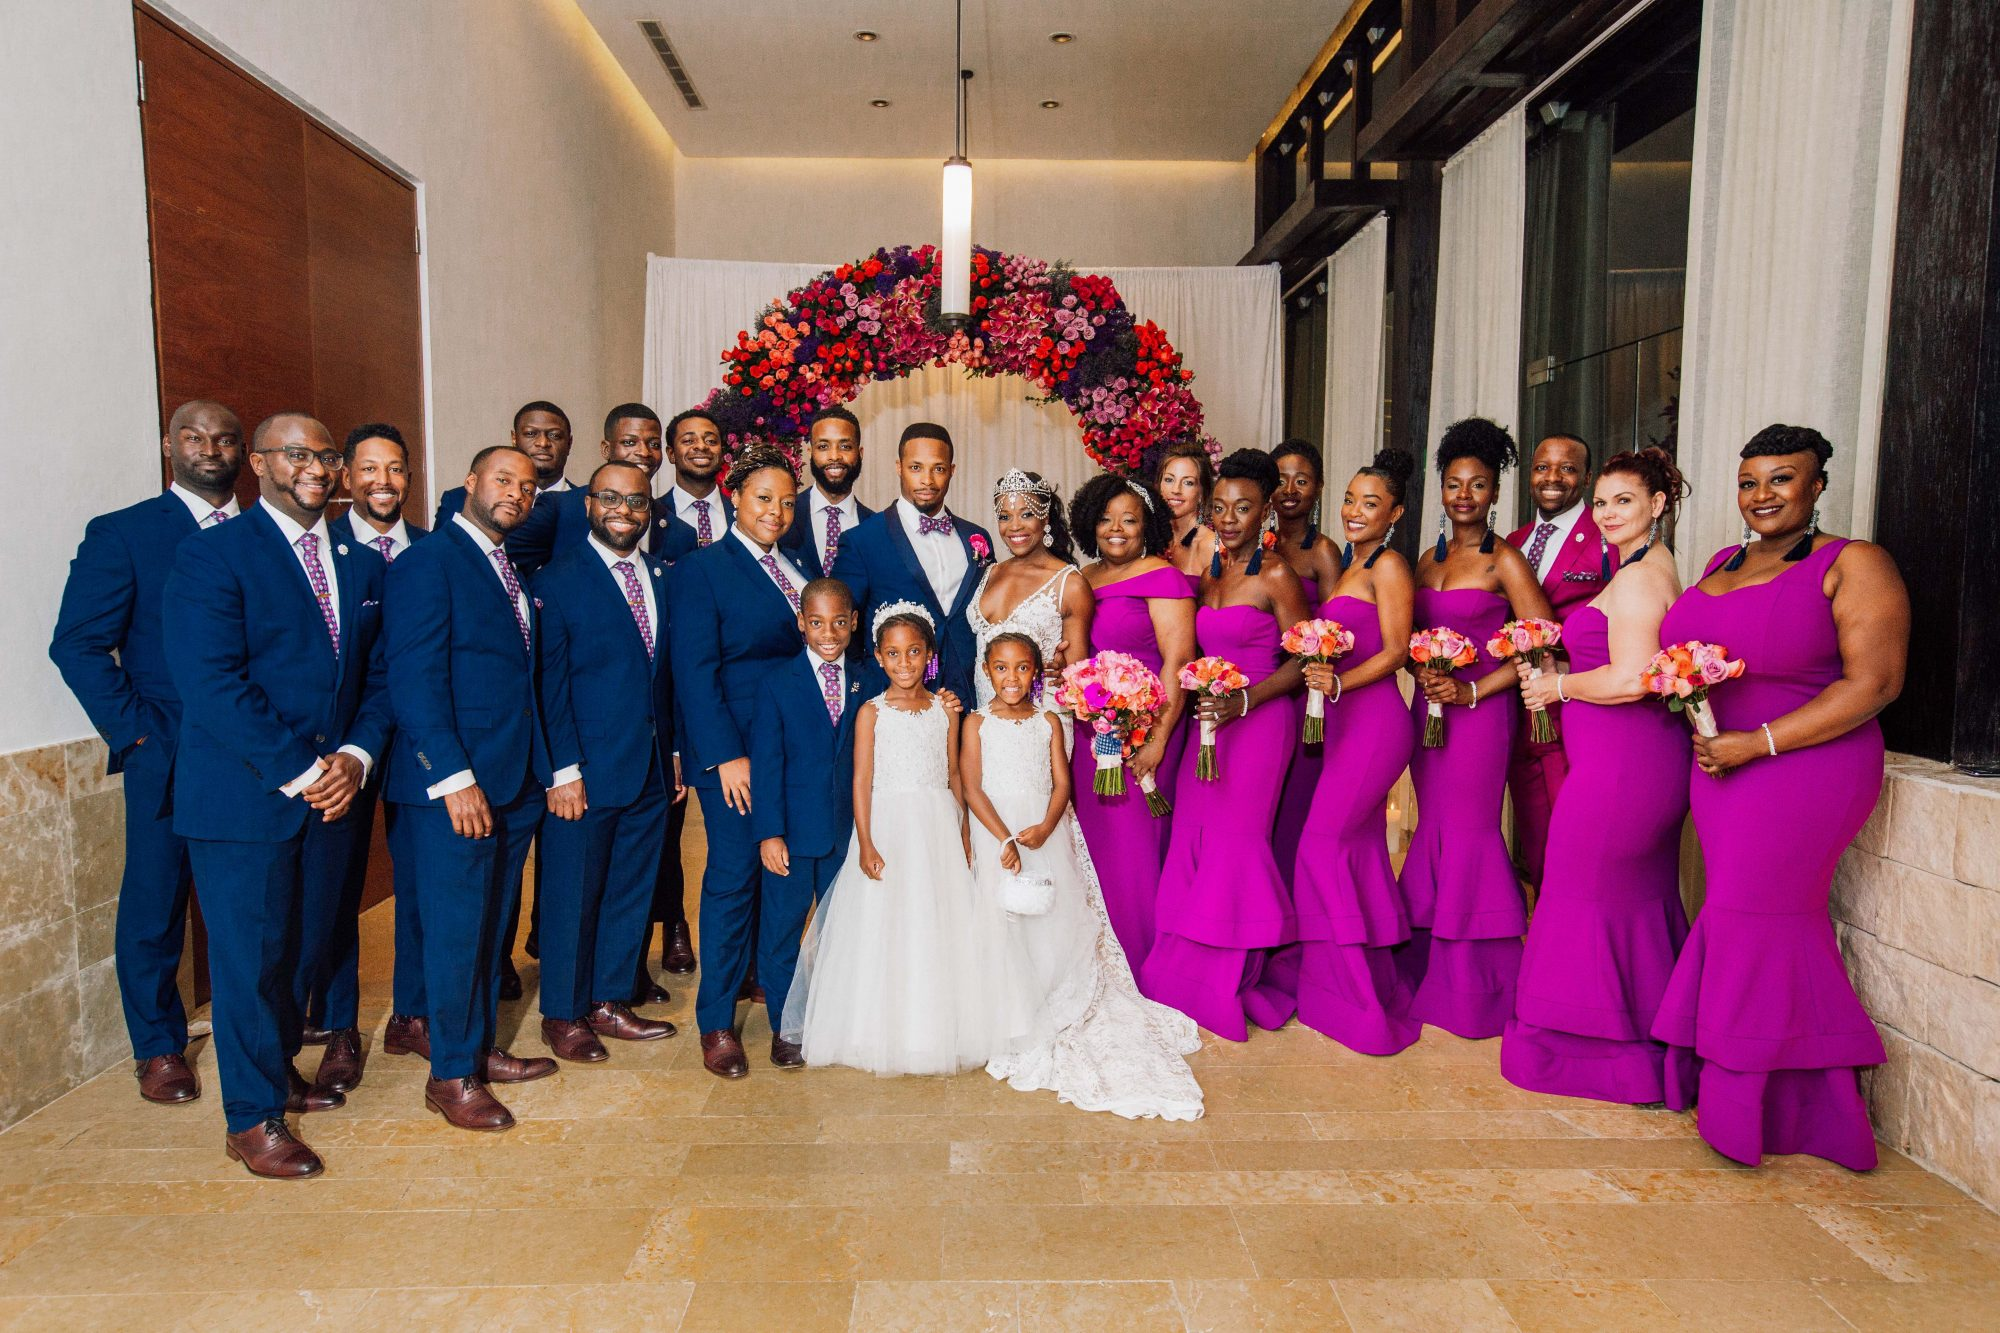 bride and groom wedding party navy tux pink dresses